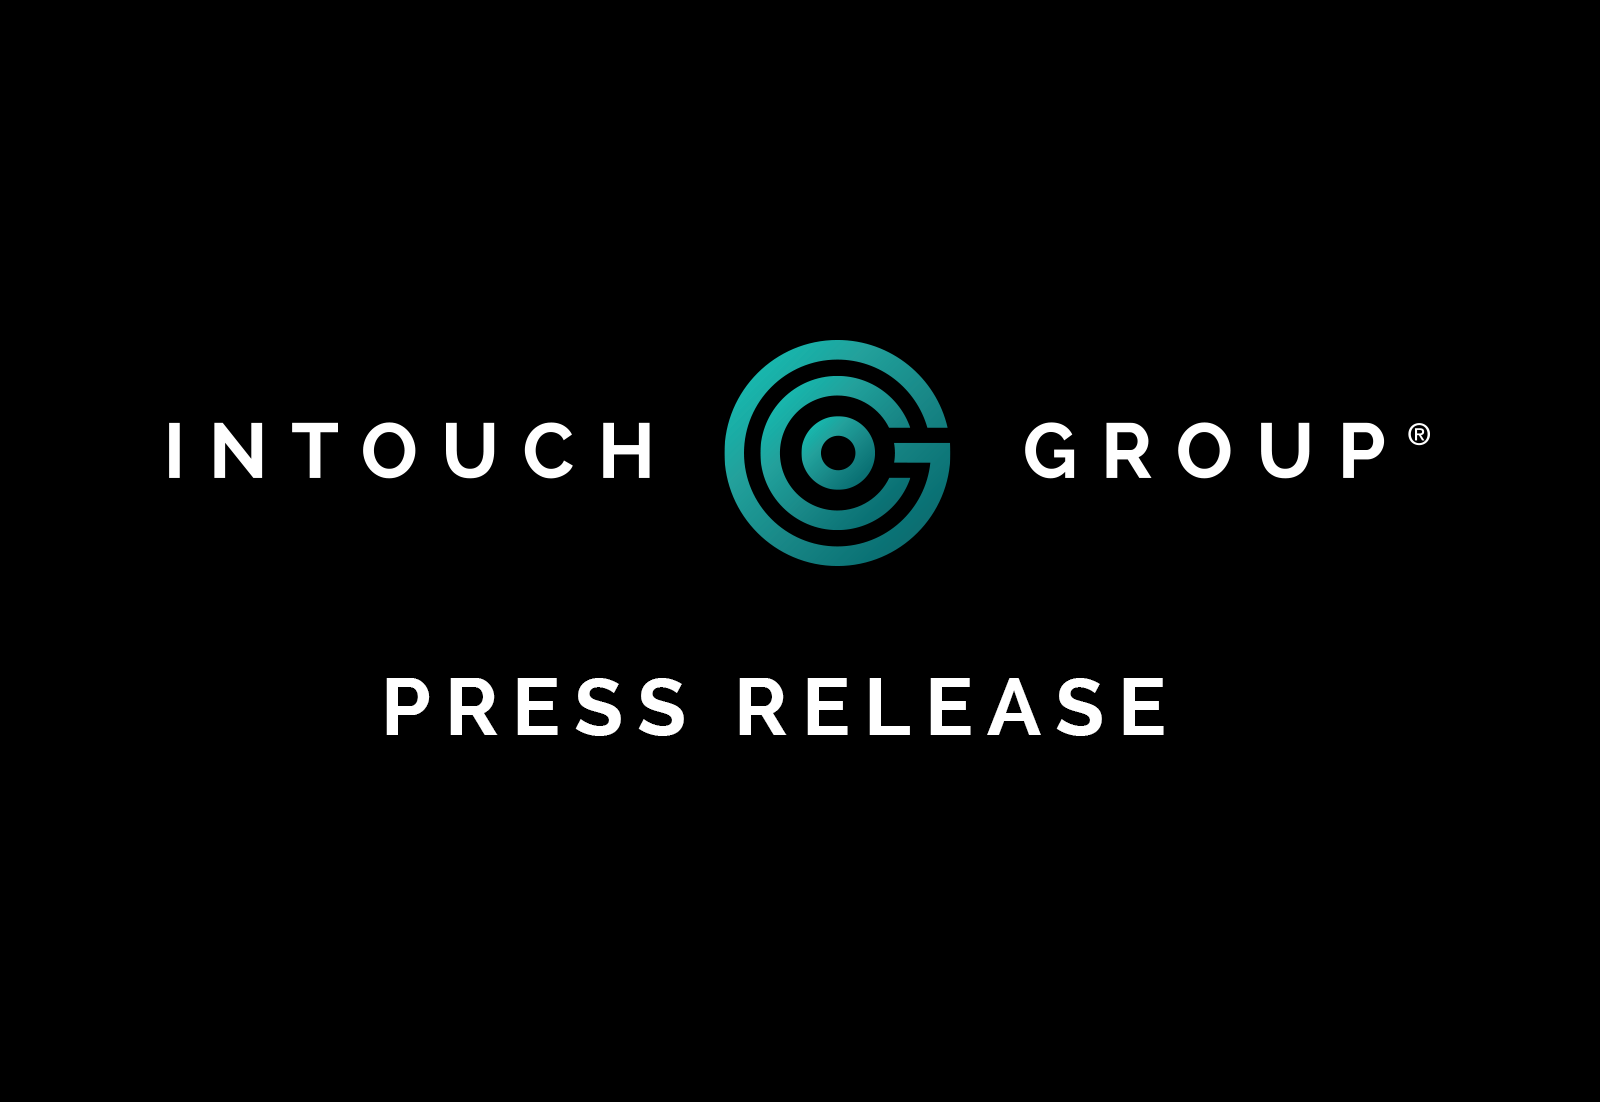 Intouch Group Strengthens Strategic Planning Leadership With Hire of John Kenny